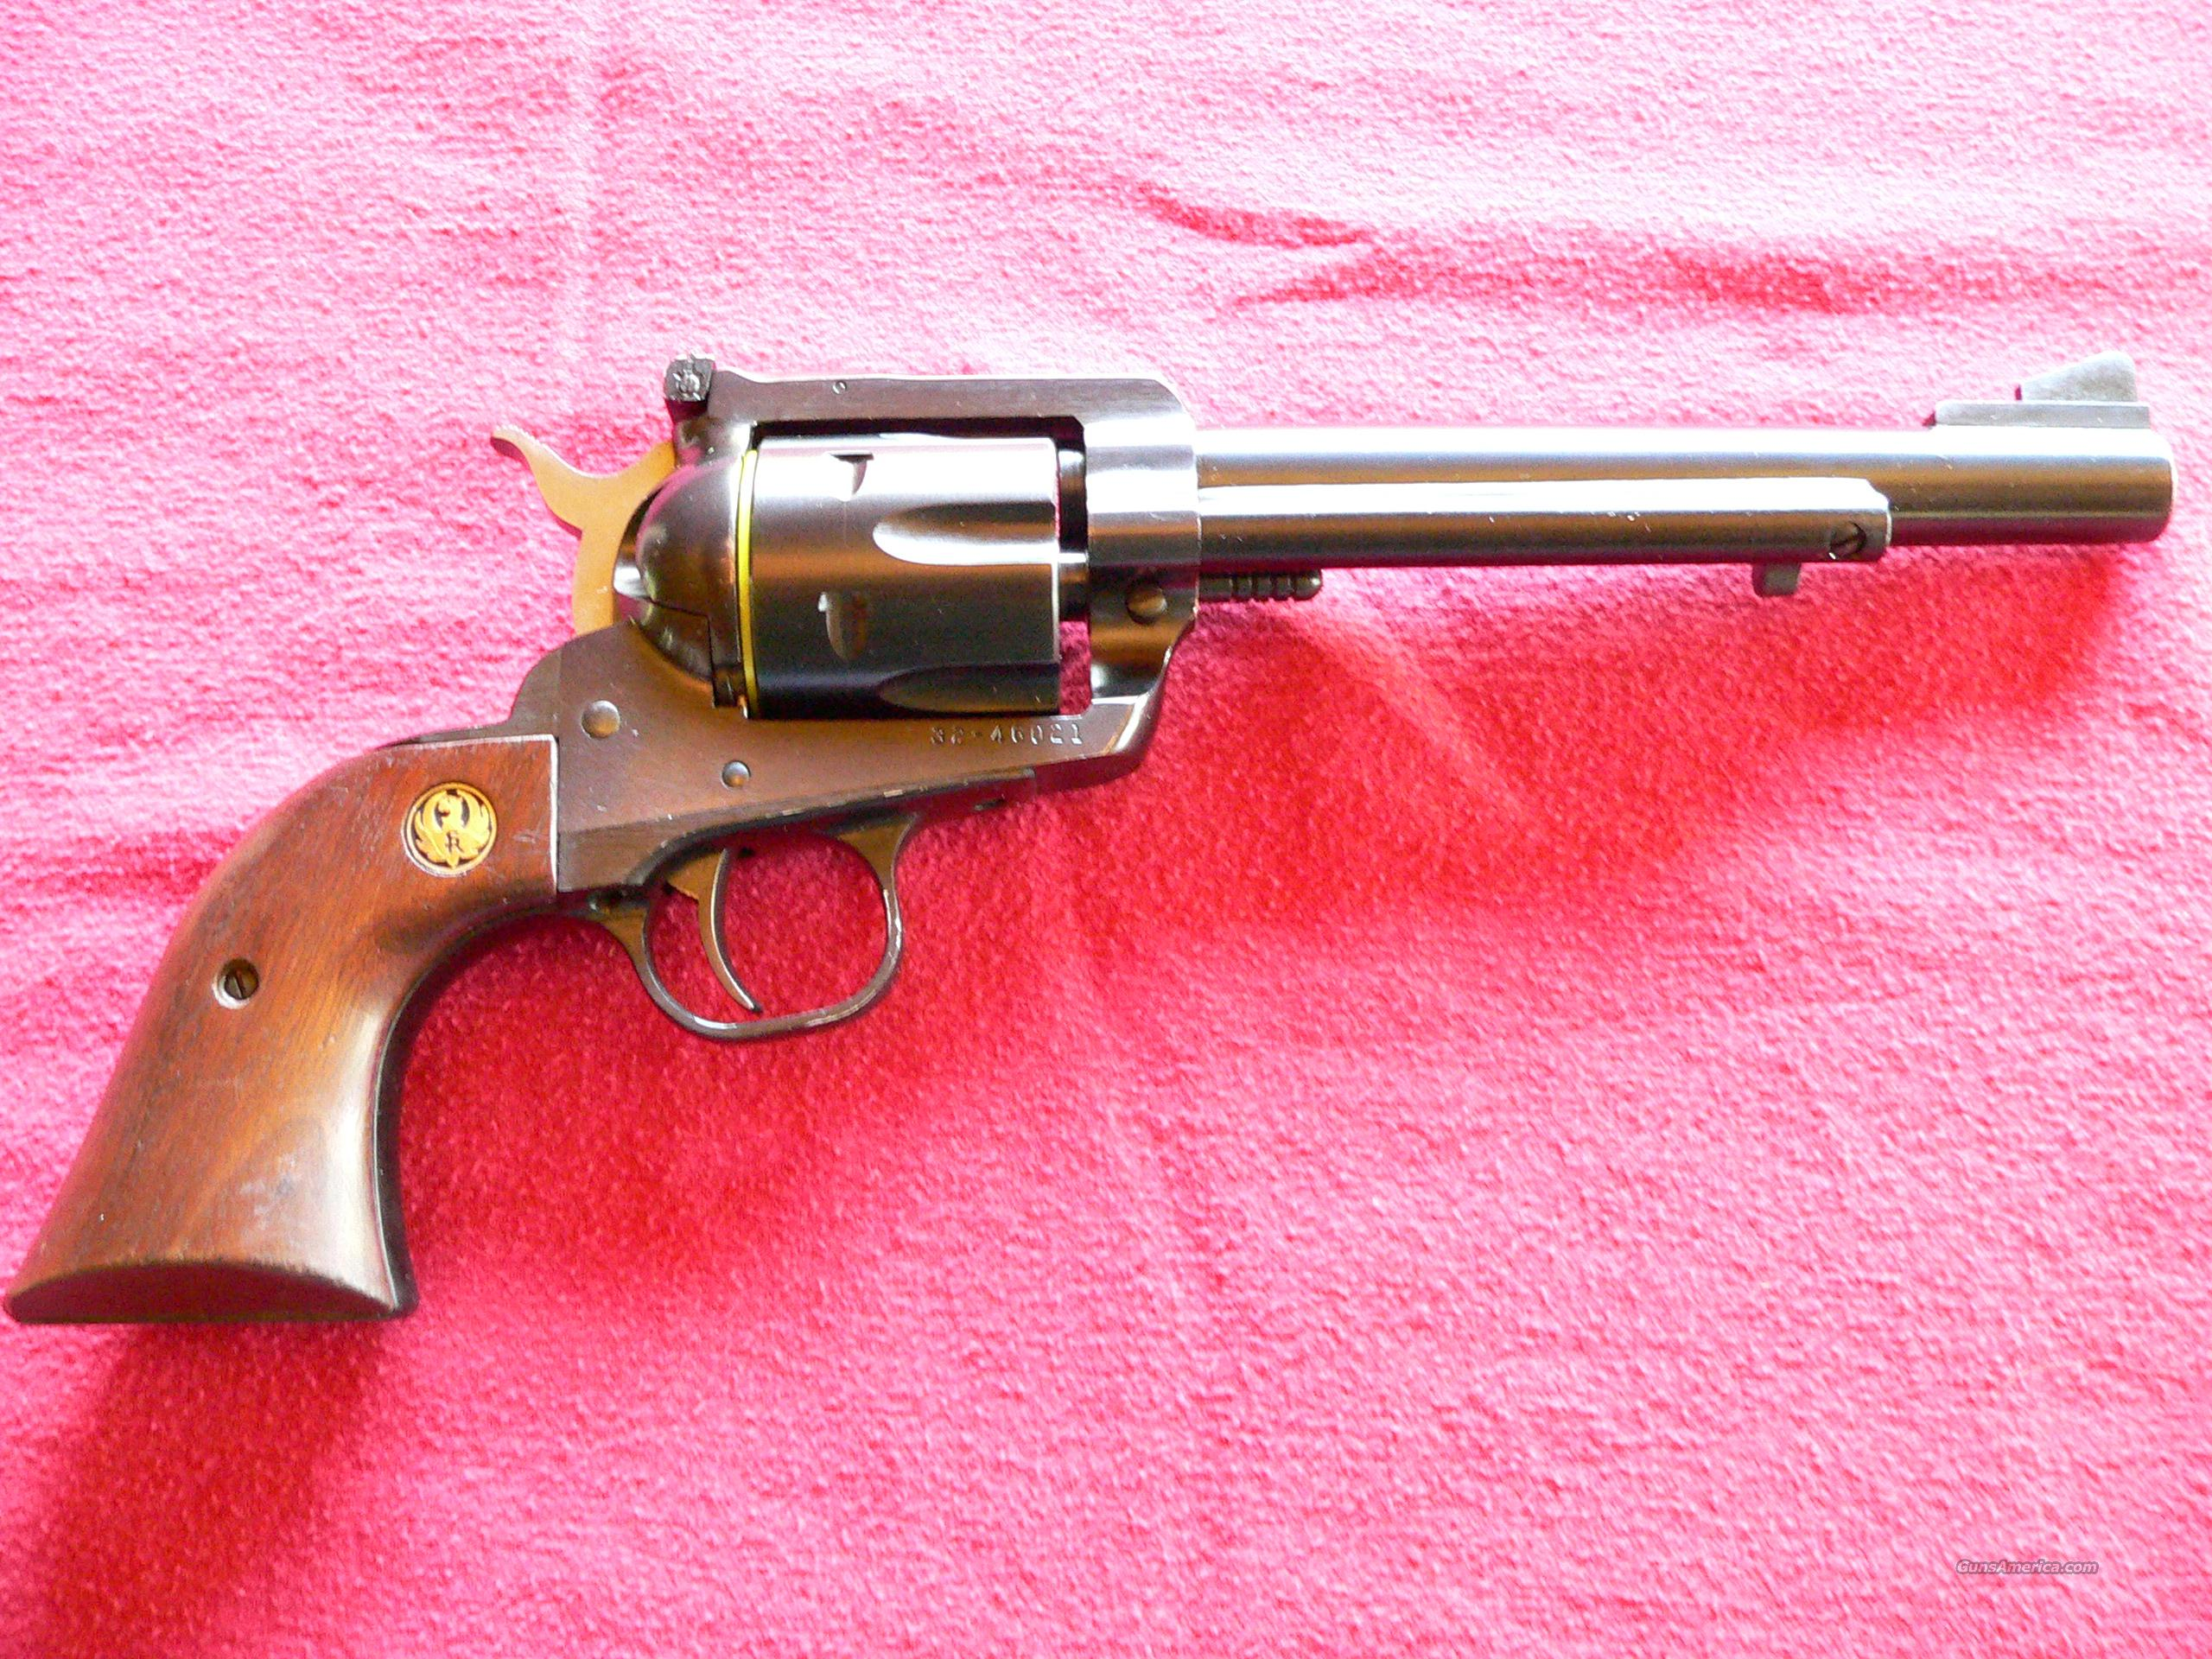 REDUCED Ruger New Model Blackhawk cal. 357 Magnum Revolver   Guns > Pistols > Ruger Single Action Revolvers > Blackhawk Type